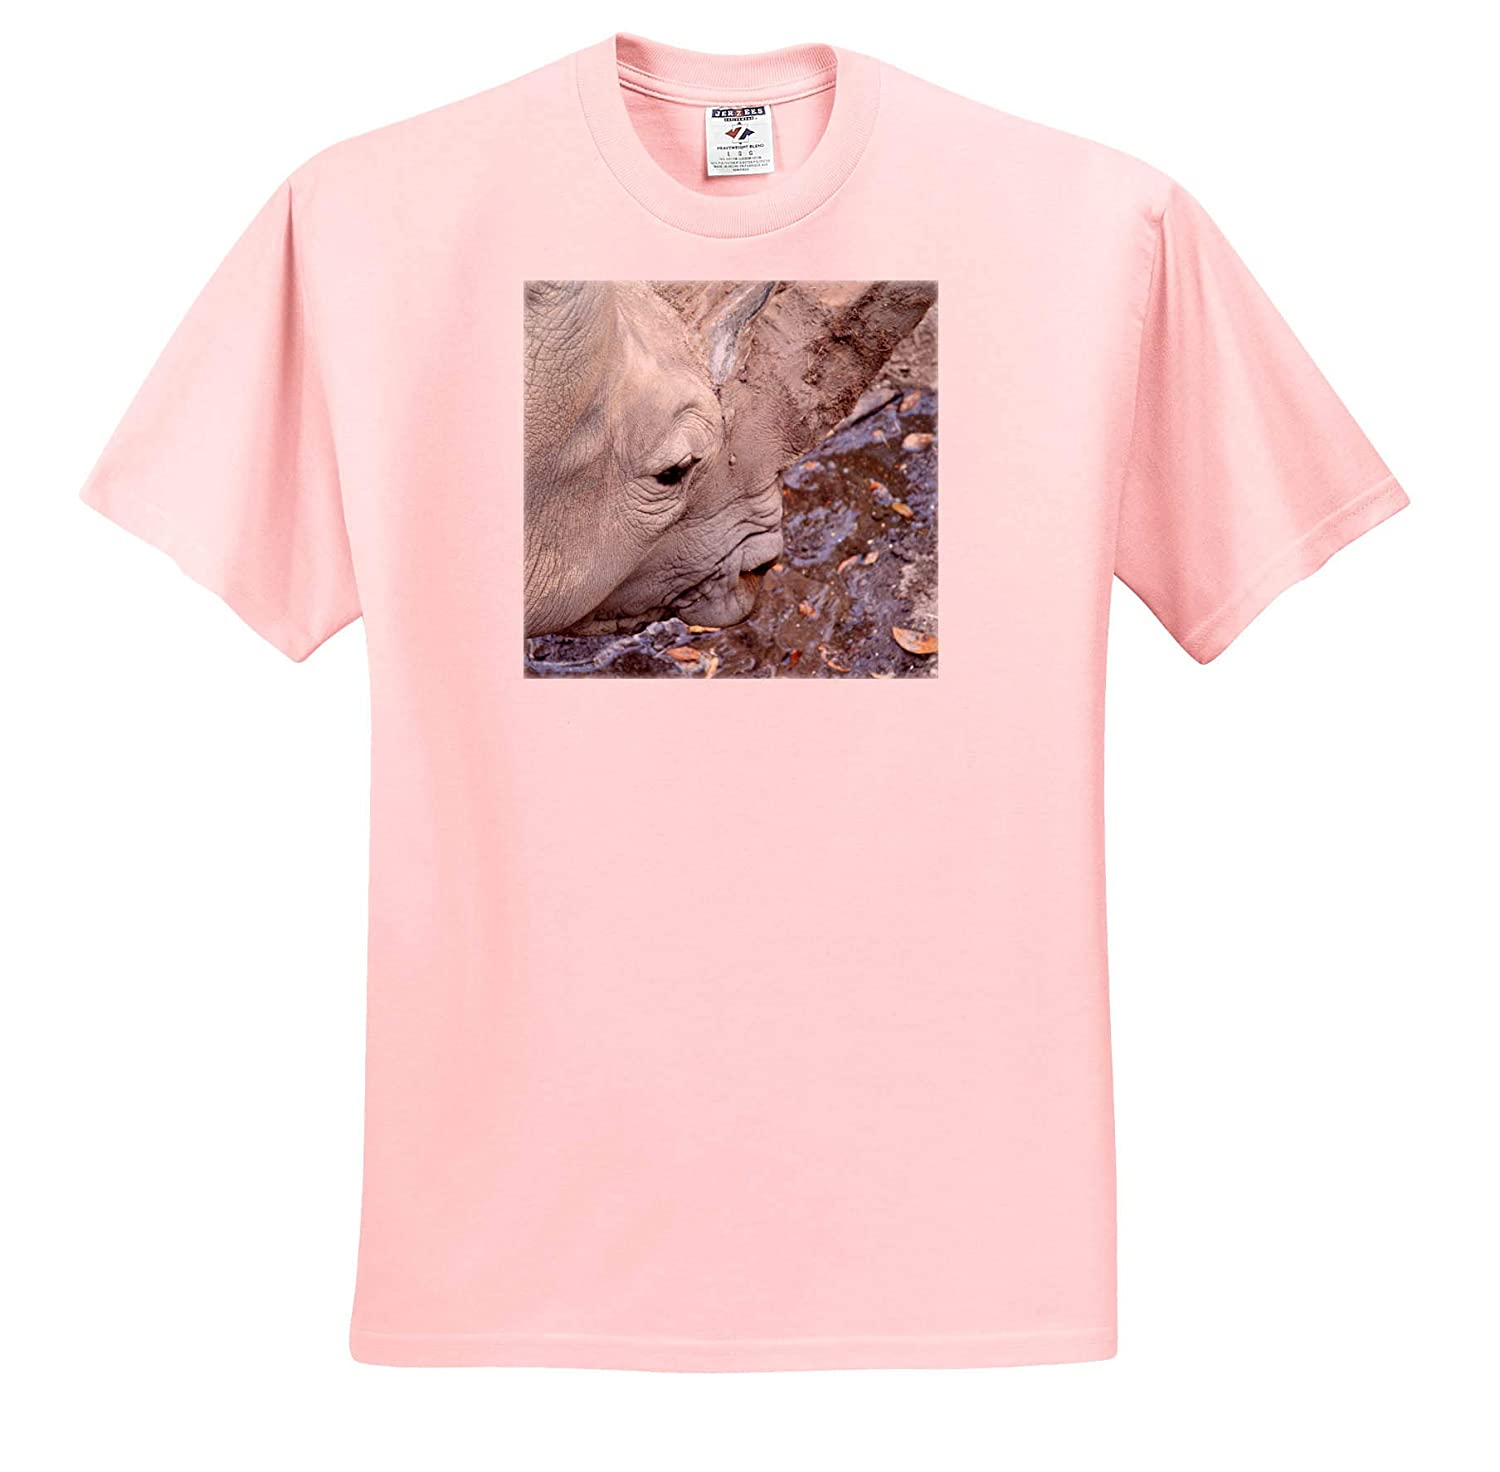 T-Shirts Rhino Head from Side Mouth Open 3dRose Susans Zoo Crew Animal